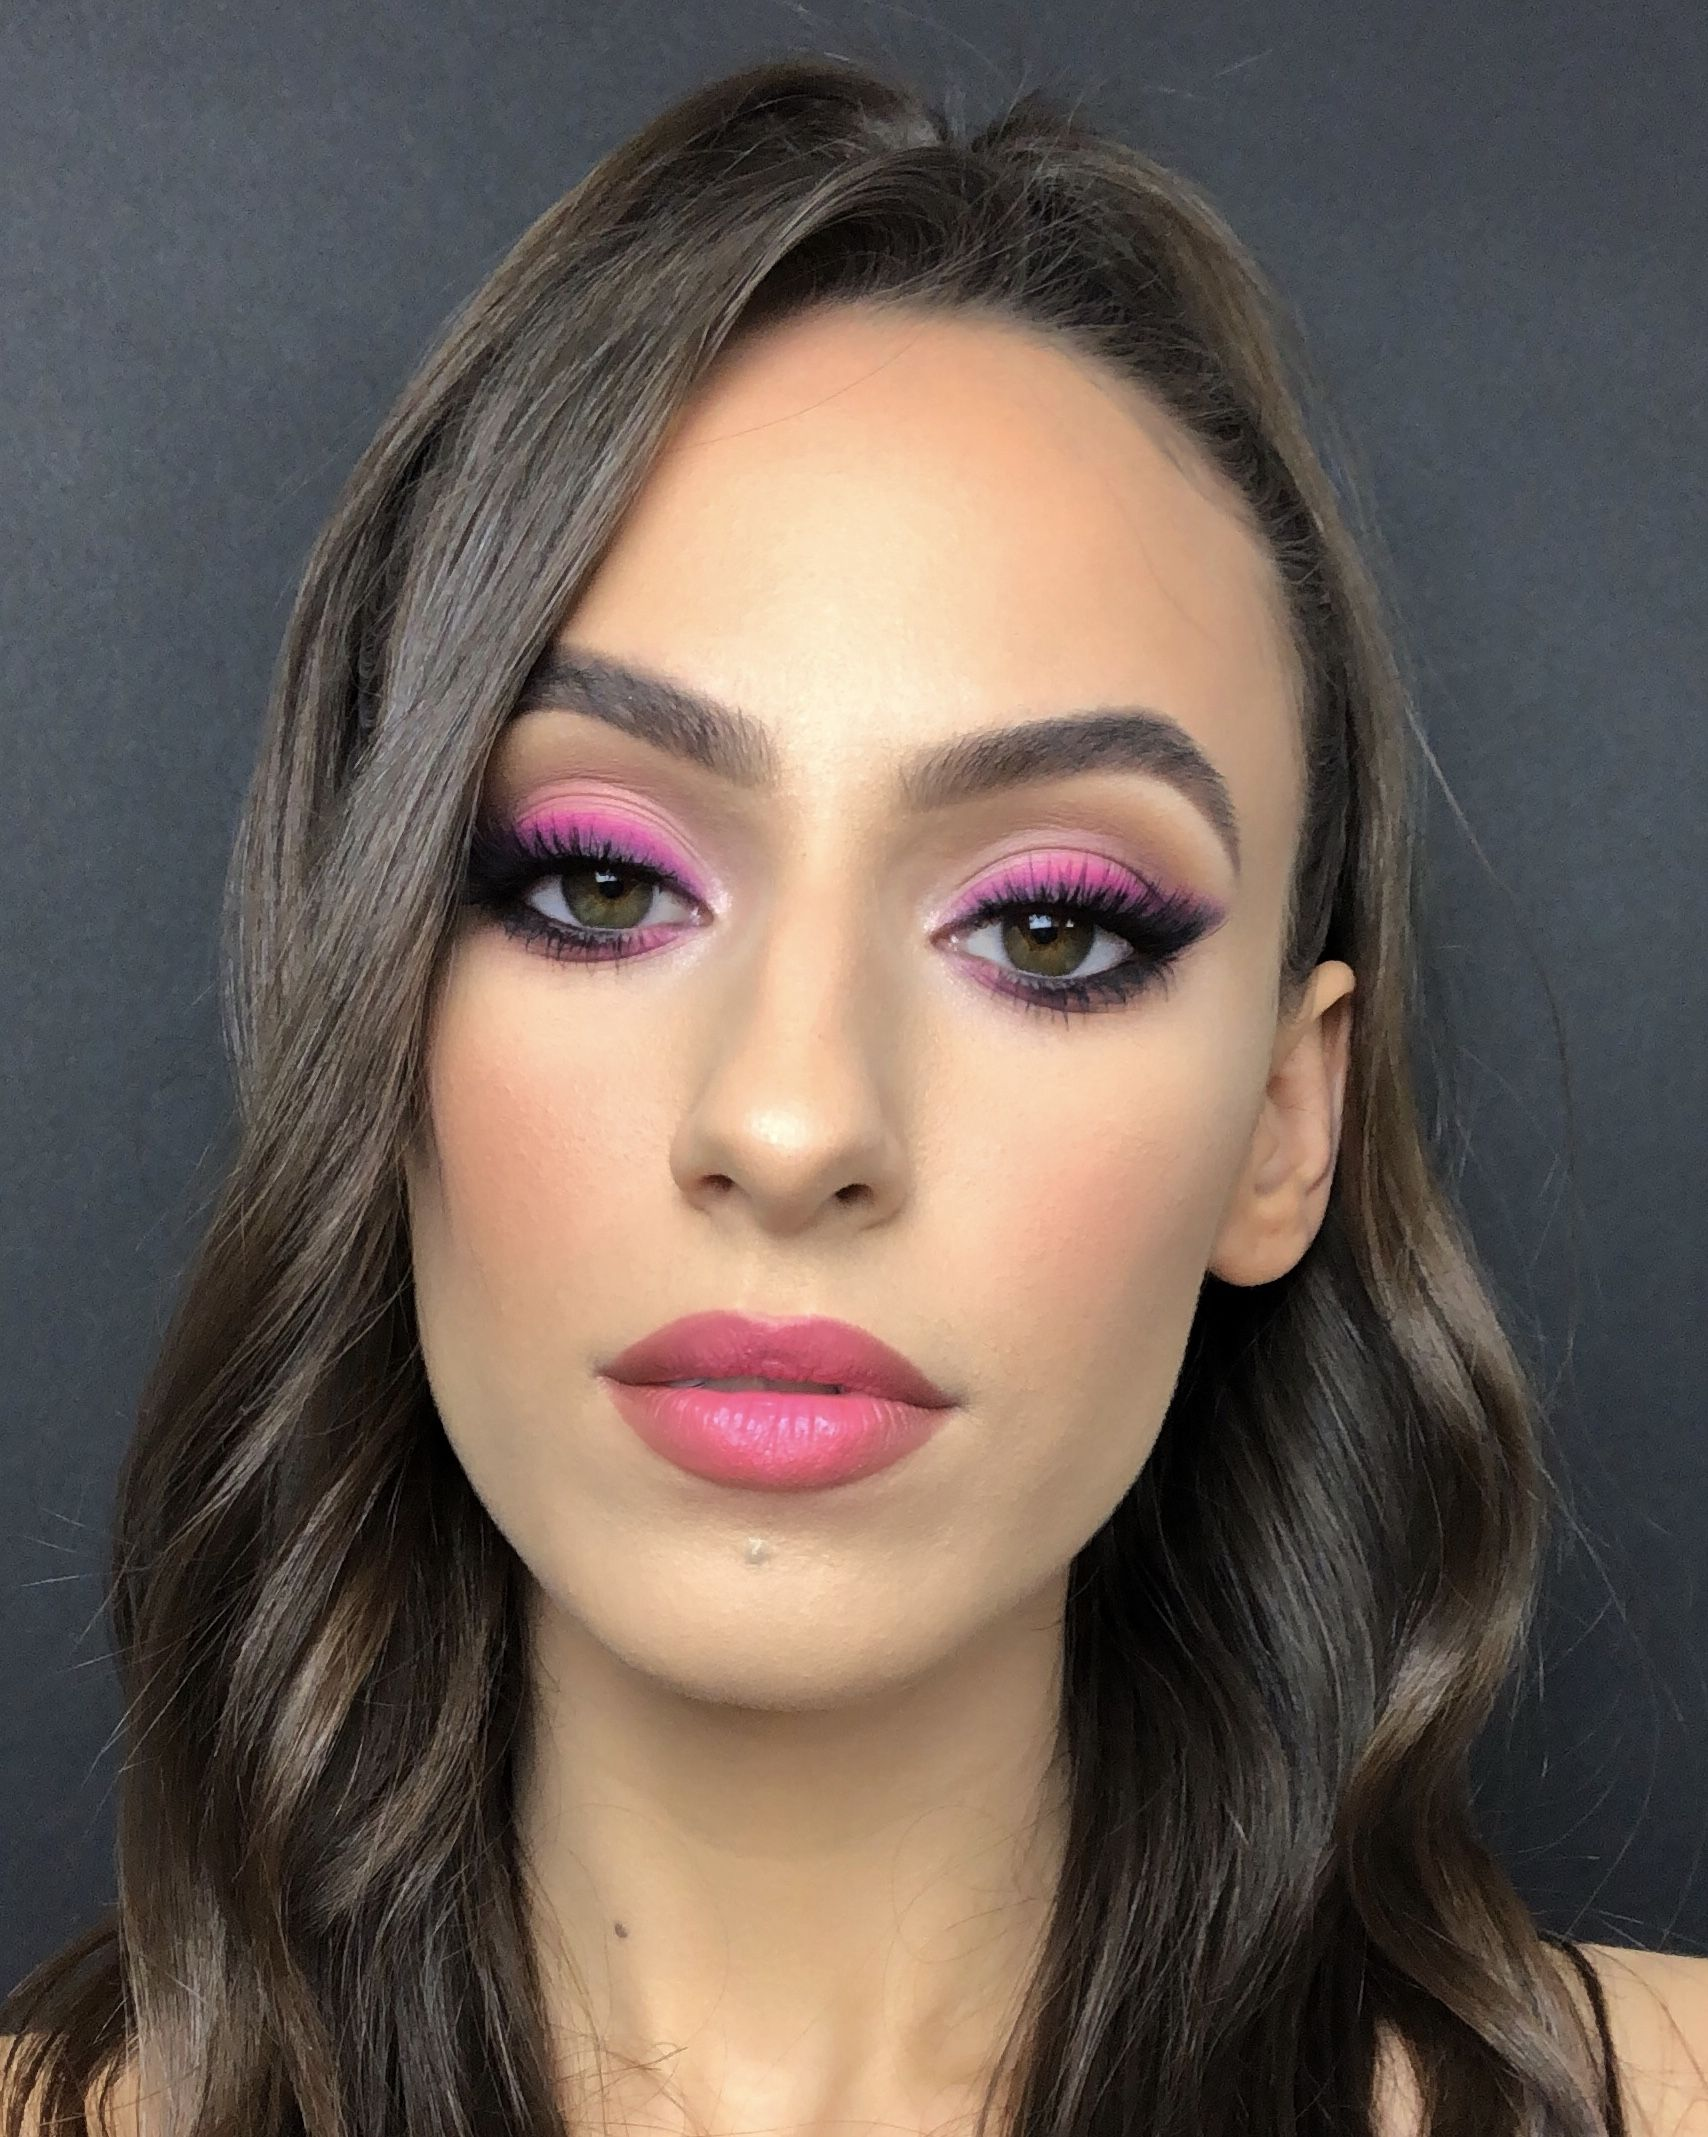 Smokey wing with a pop of bright hot pink. James Charles x